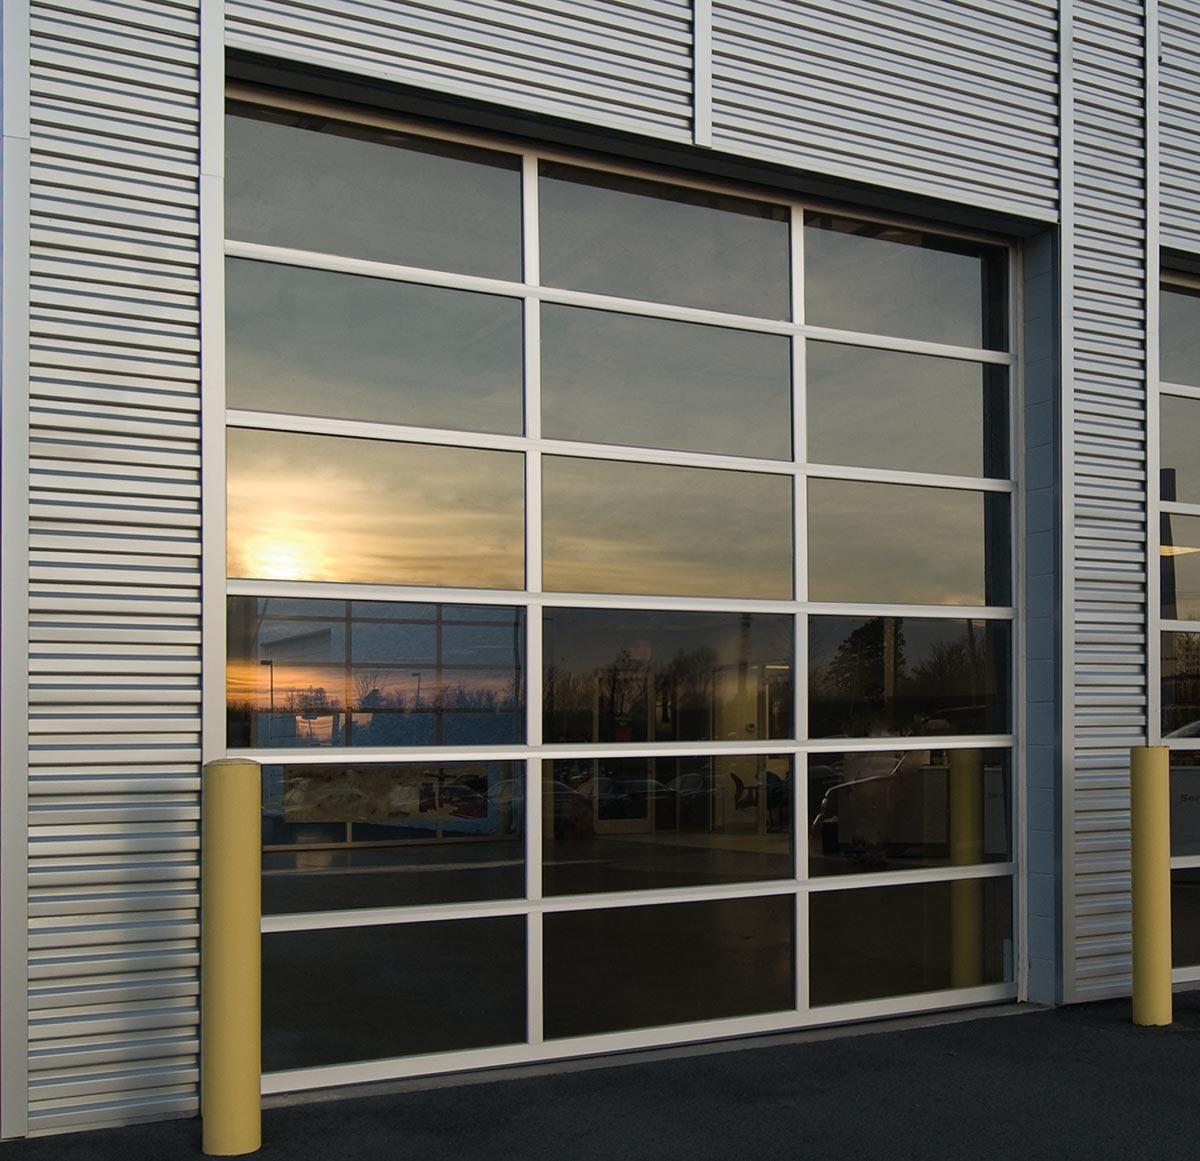 Commercial Roll Up & Overhead Garage Doors in Lewisville